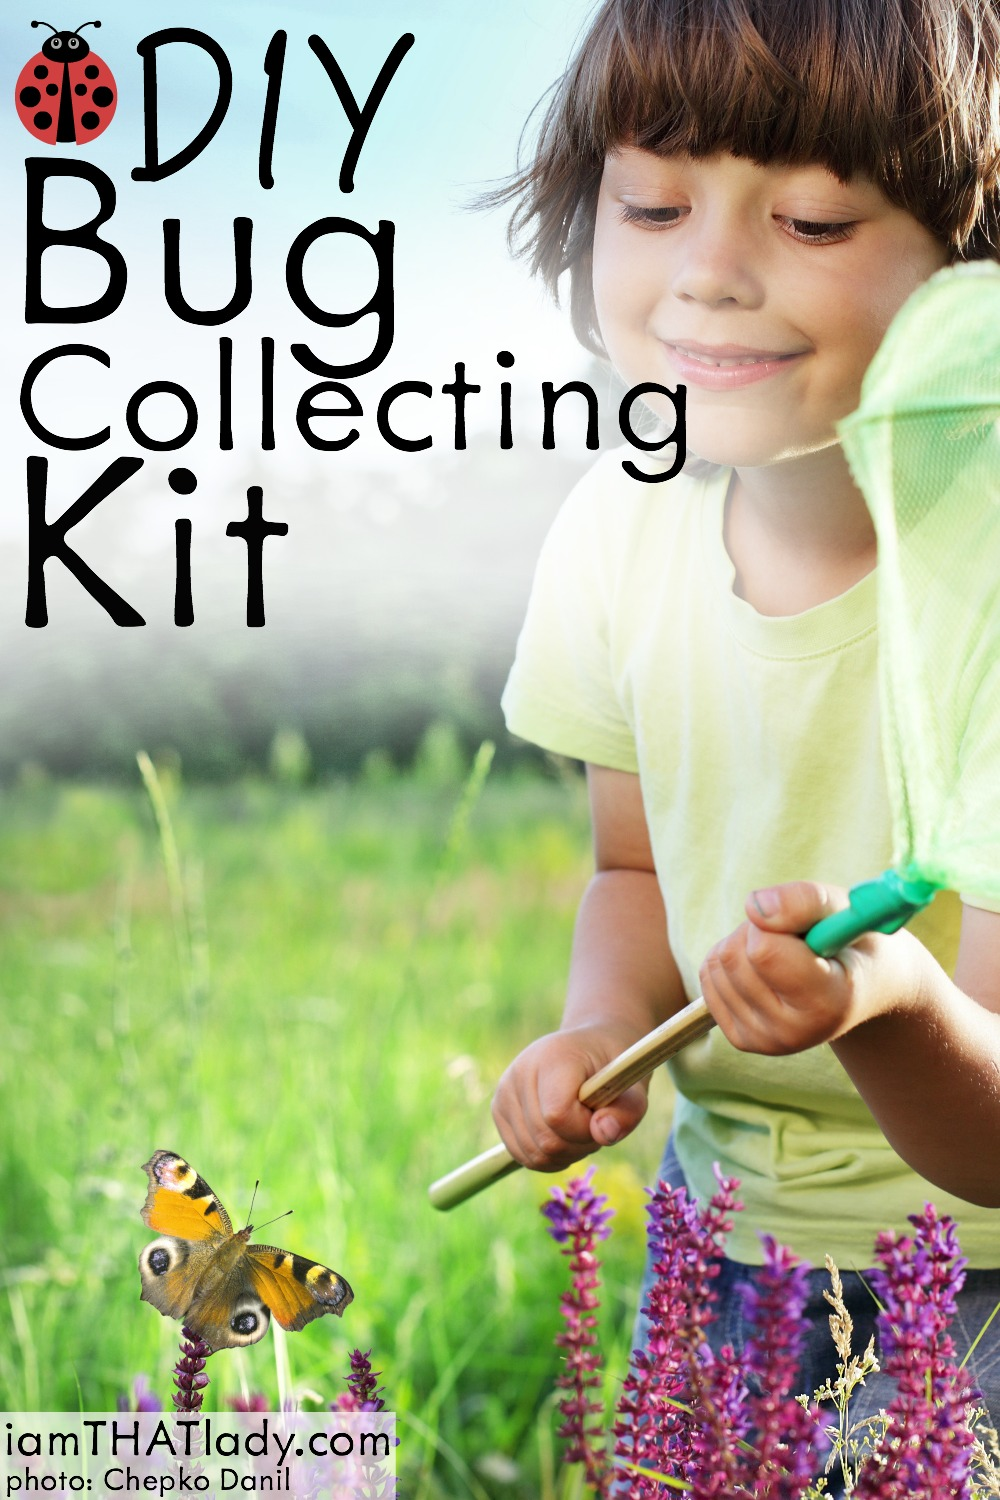 There's no time to get bored in summer when you put together this inexpensive and super fun DIY bug collecting kit! And every item is only $1!